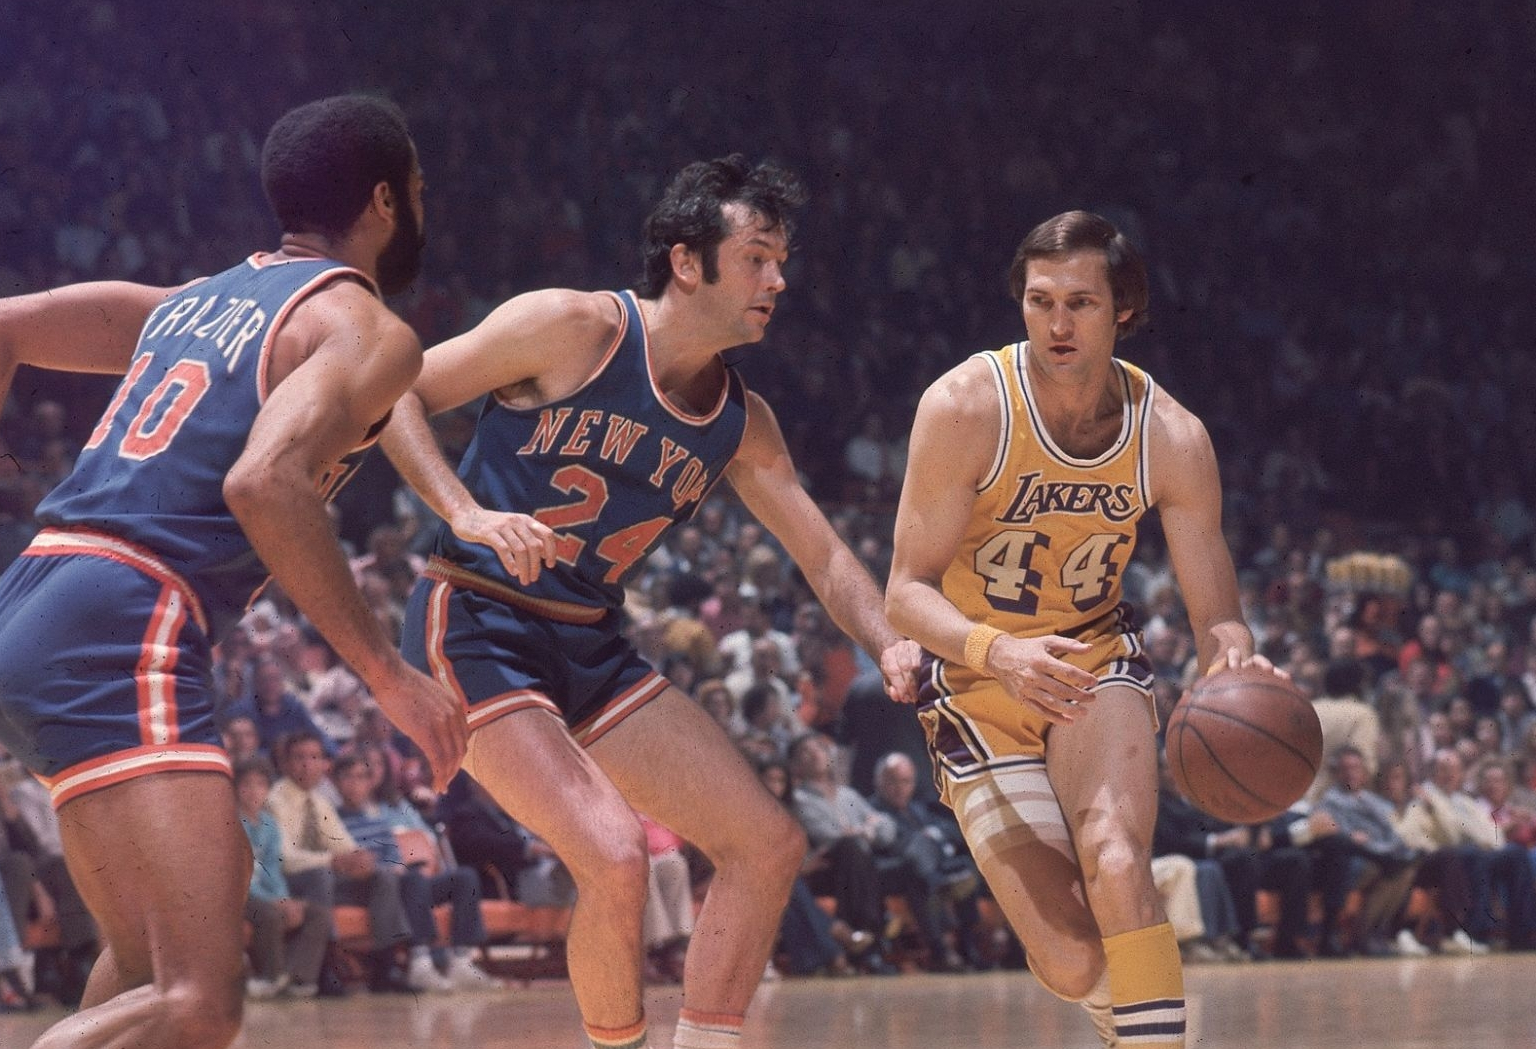 Jerry West vs. Knicks, 1973